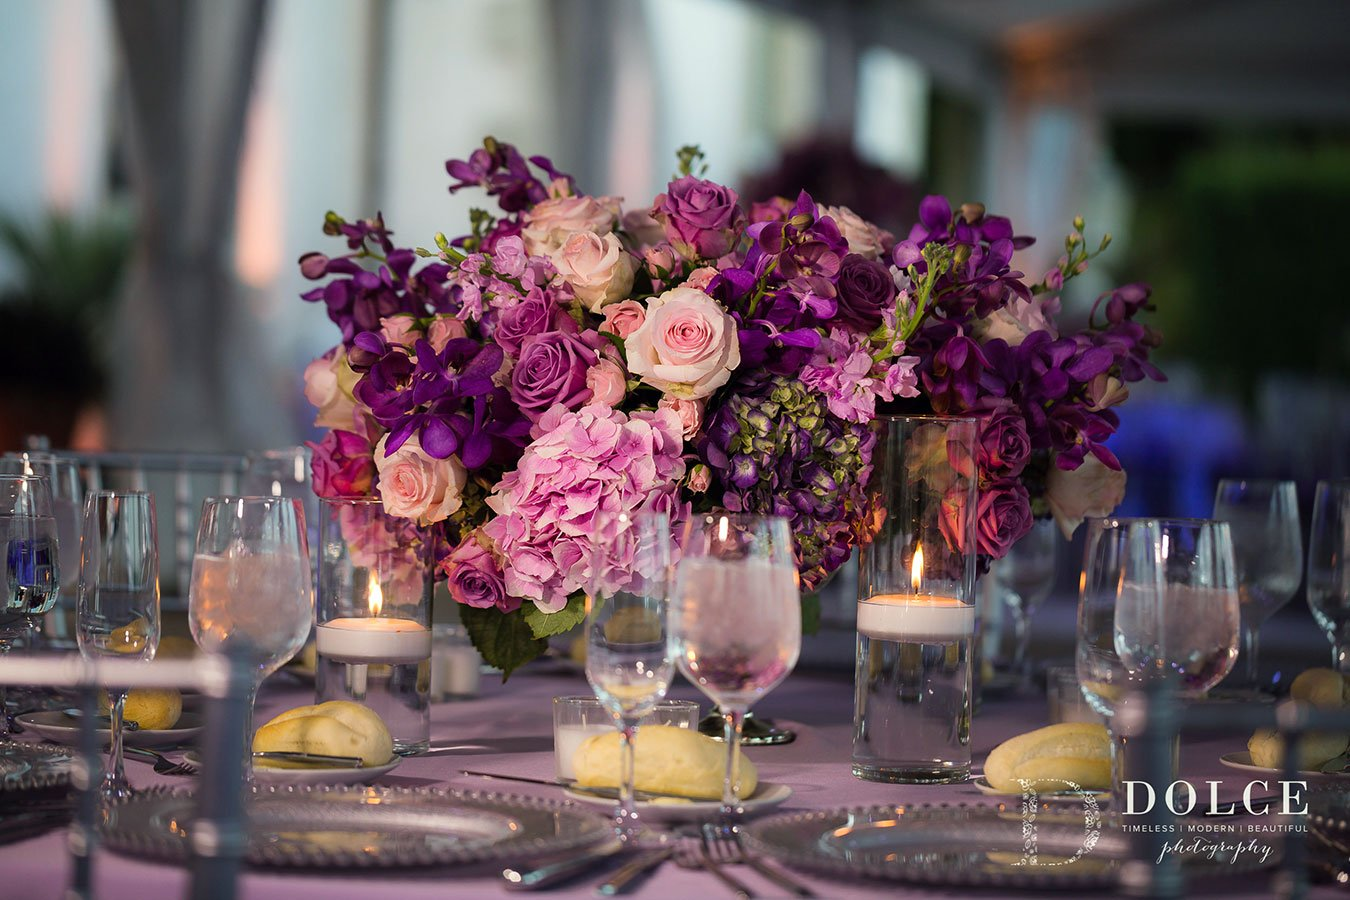 2018 Wedding Colors | Ultra Violet |Romantic floral centerpiece with shades of pink, purple and ultra violet hydrangea, orchids, garden roses and larkspur